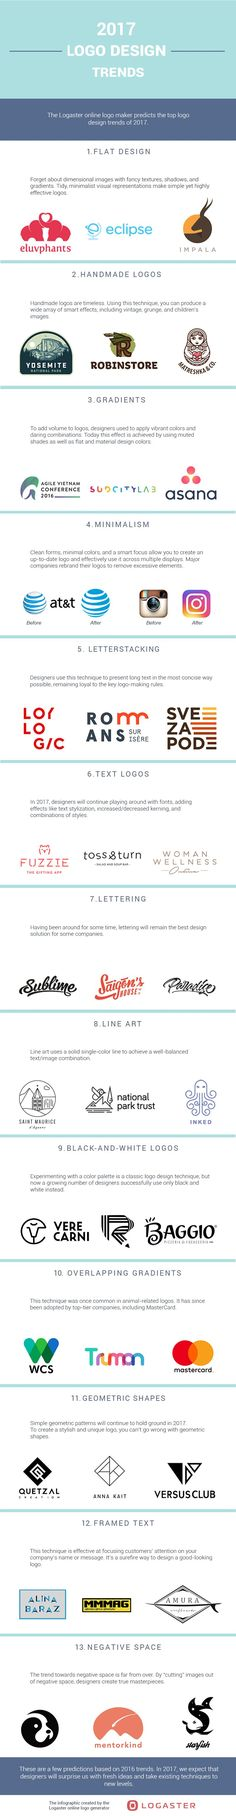 10 Logo Design Trends to Watch for in 2020 [Infographic] - What trends will impact logo design in Learn what designers need to keep an eye out for. Logo Design Tipps, Design Logo, Logo Design Trends, Graphic Design Tips, Tool Design, Graphic Design Inspiration, Branding Design, Graph Design, 2017 Design